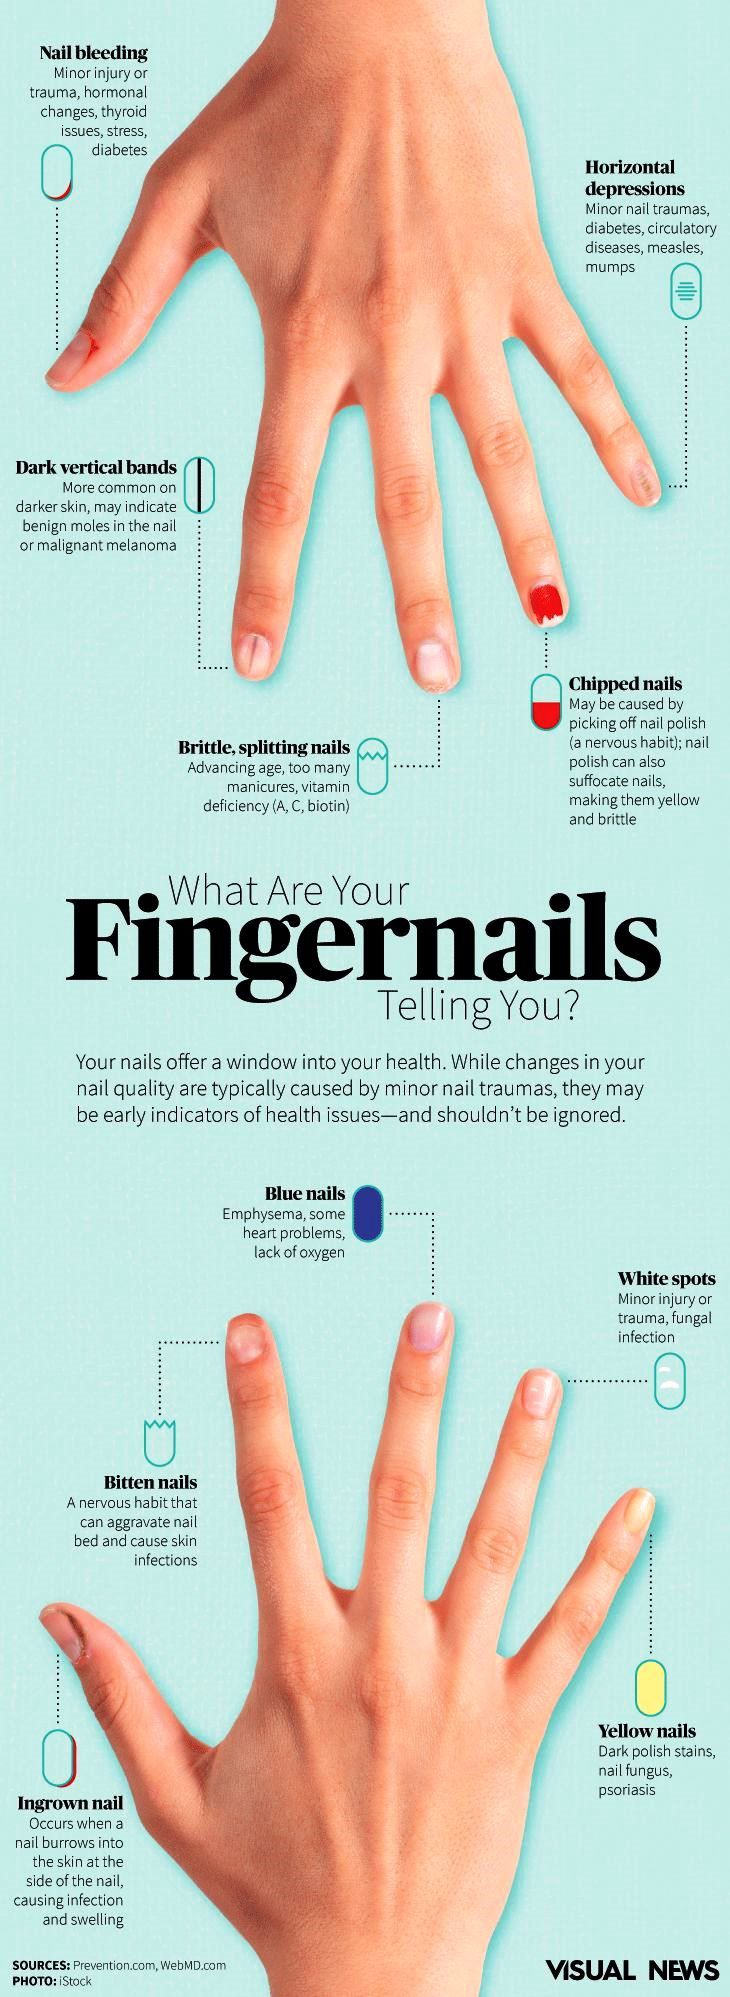 7 Things Your Nails Can Tell You About Your Health | Bodies, Health ...